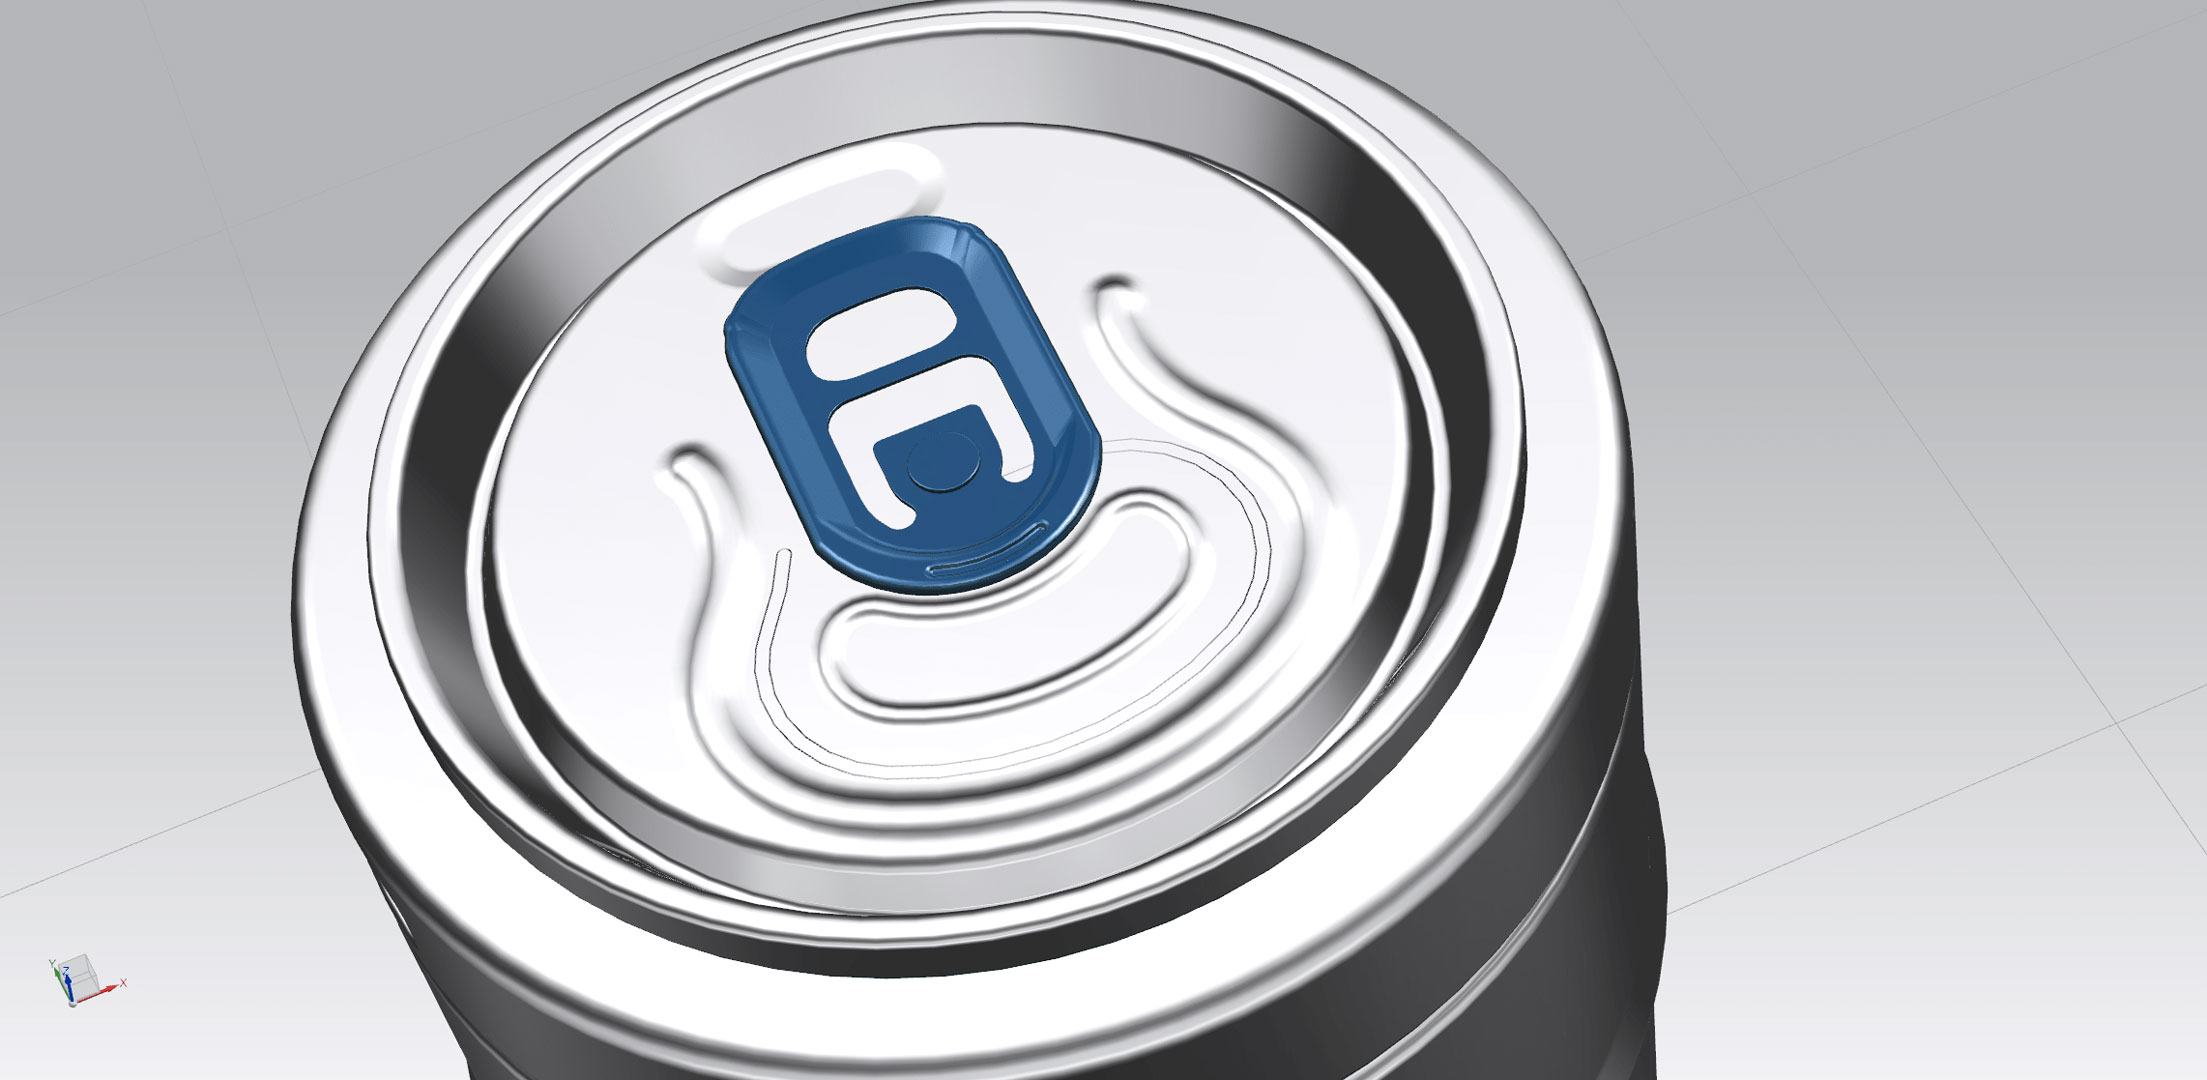 cad beer can adaptive designs